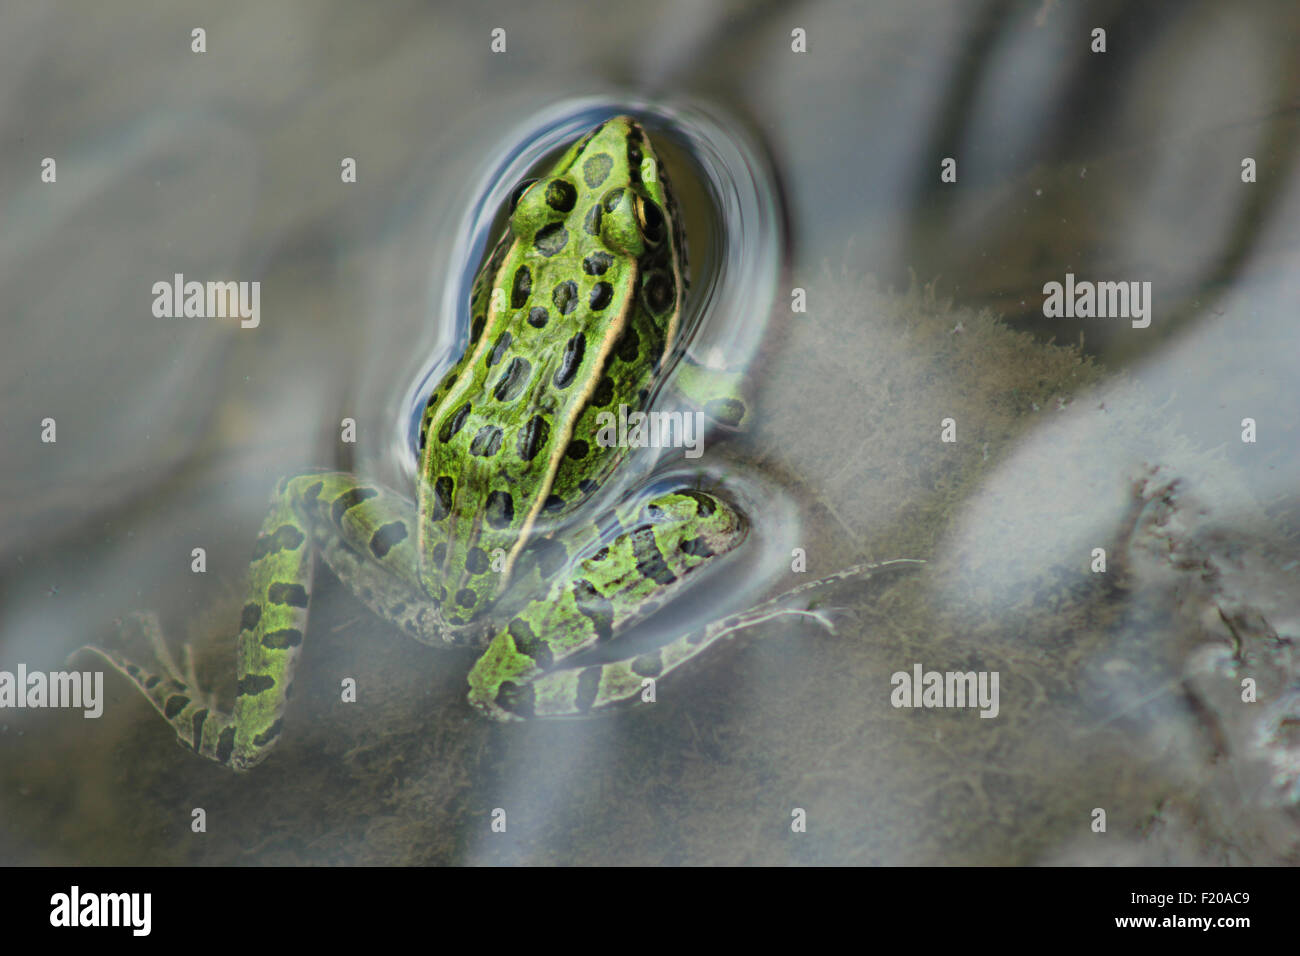 A frog in a marsh in Morden, Manitoba, Canada - Stock Image